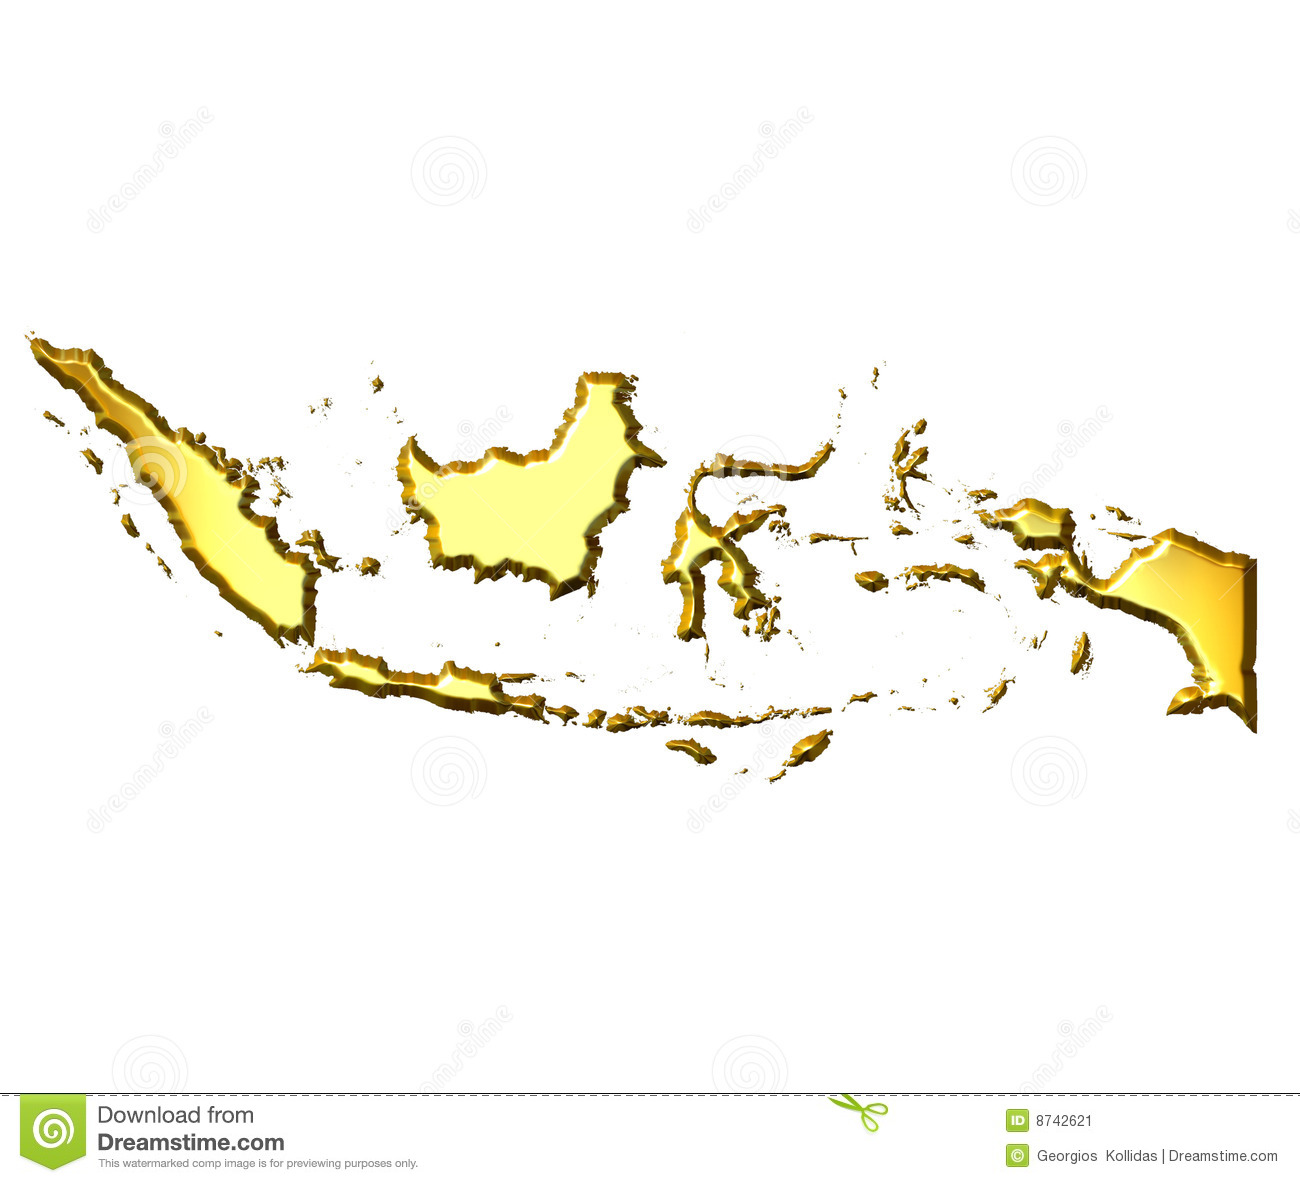 Indonesia map clipart clip art transparent download Indonesia 3d Golden Map Stock Image - Image: 8742621 clip art transparent download